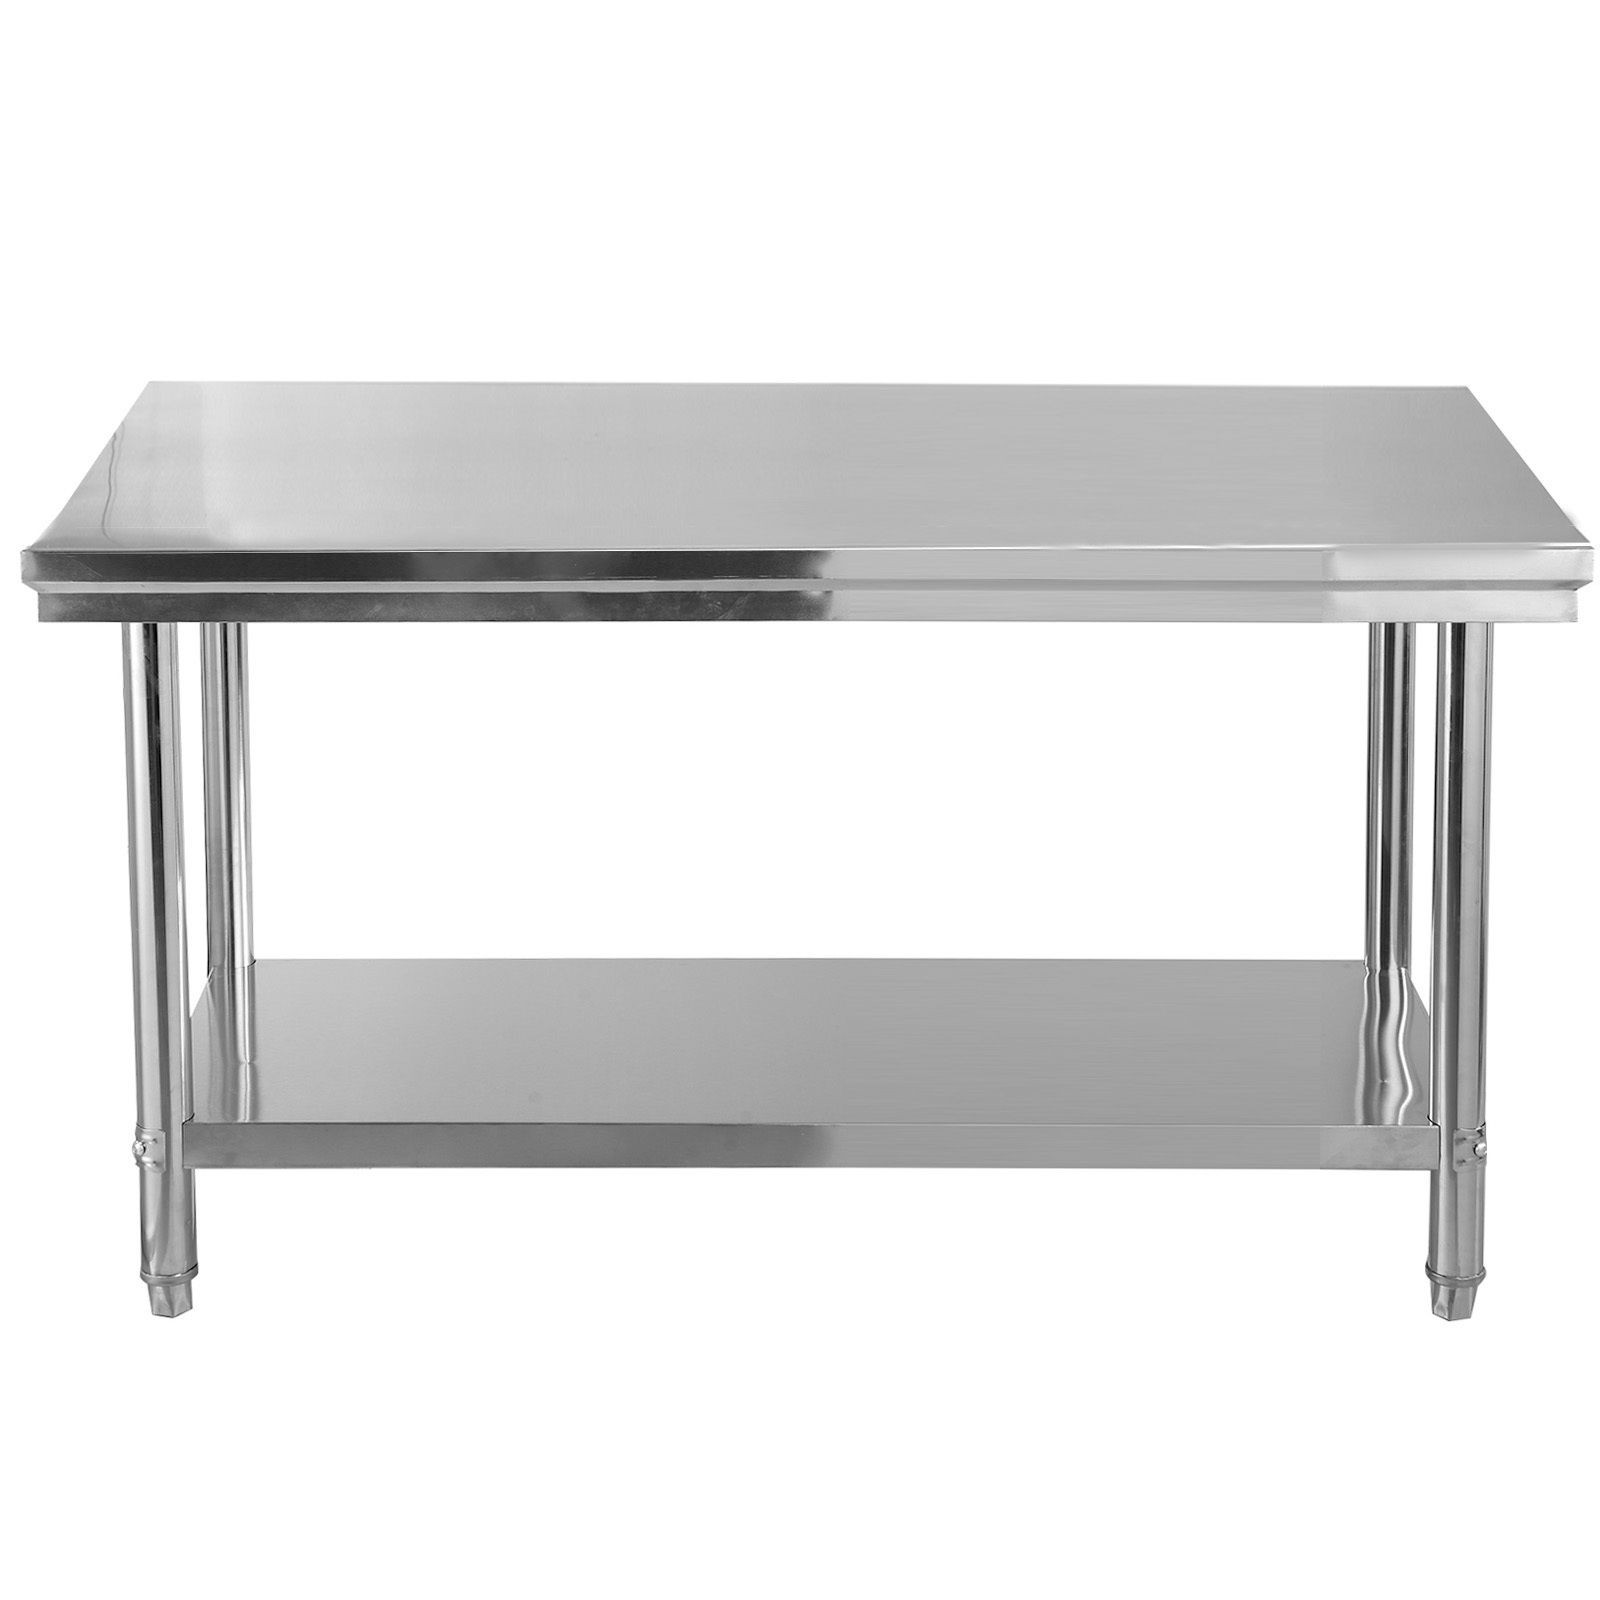 New 30 Quot X 48 Quot Stainless Steel Commercial Kitchen Work Food